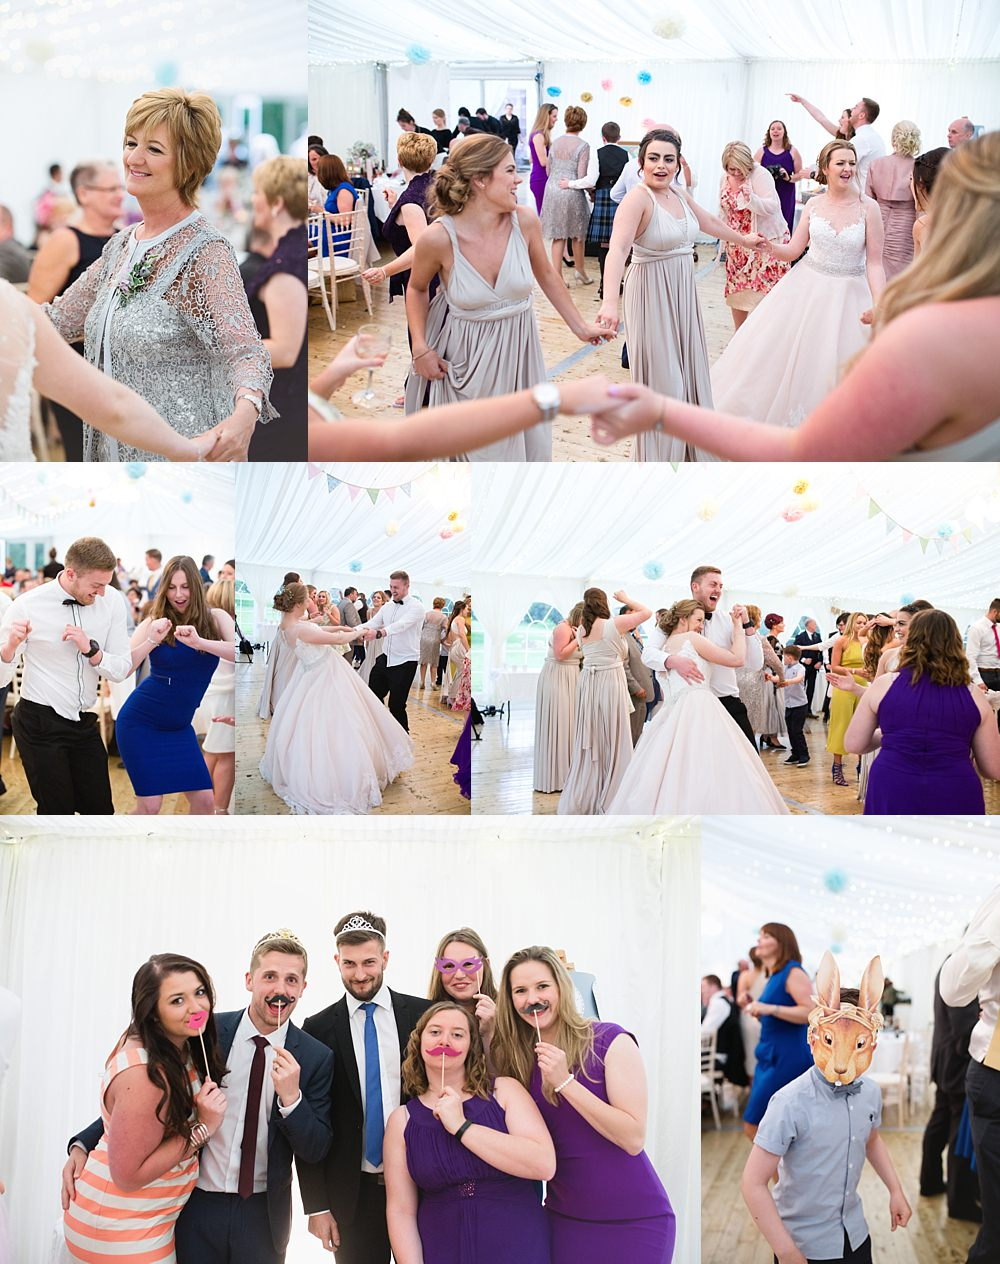 wedding Strathallan castle 13-11.jpg